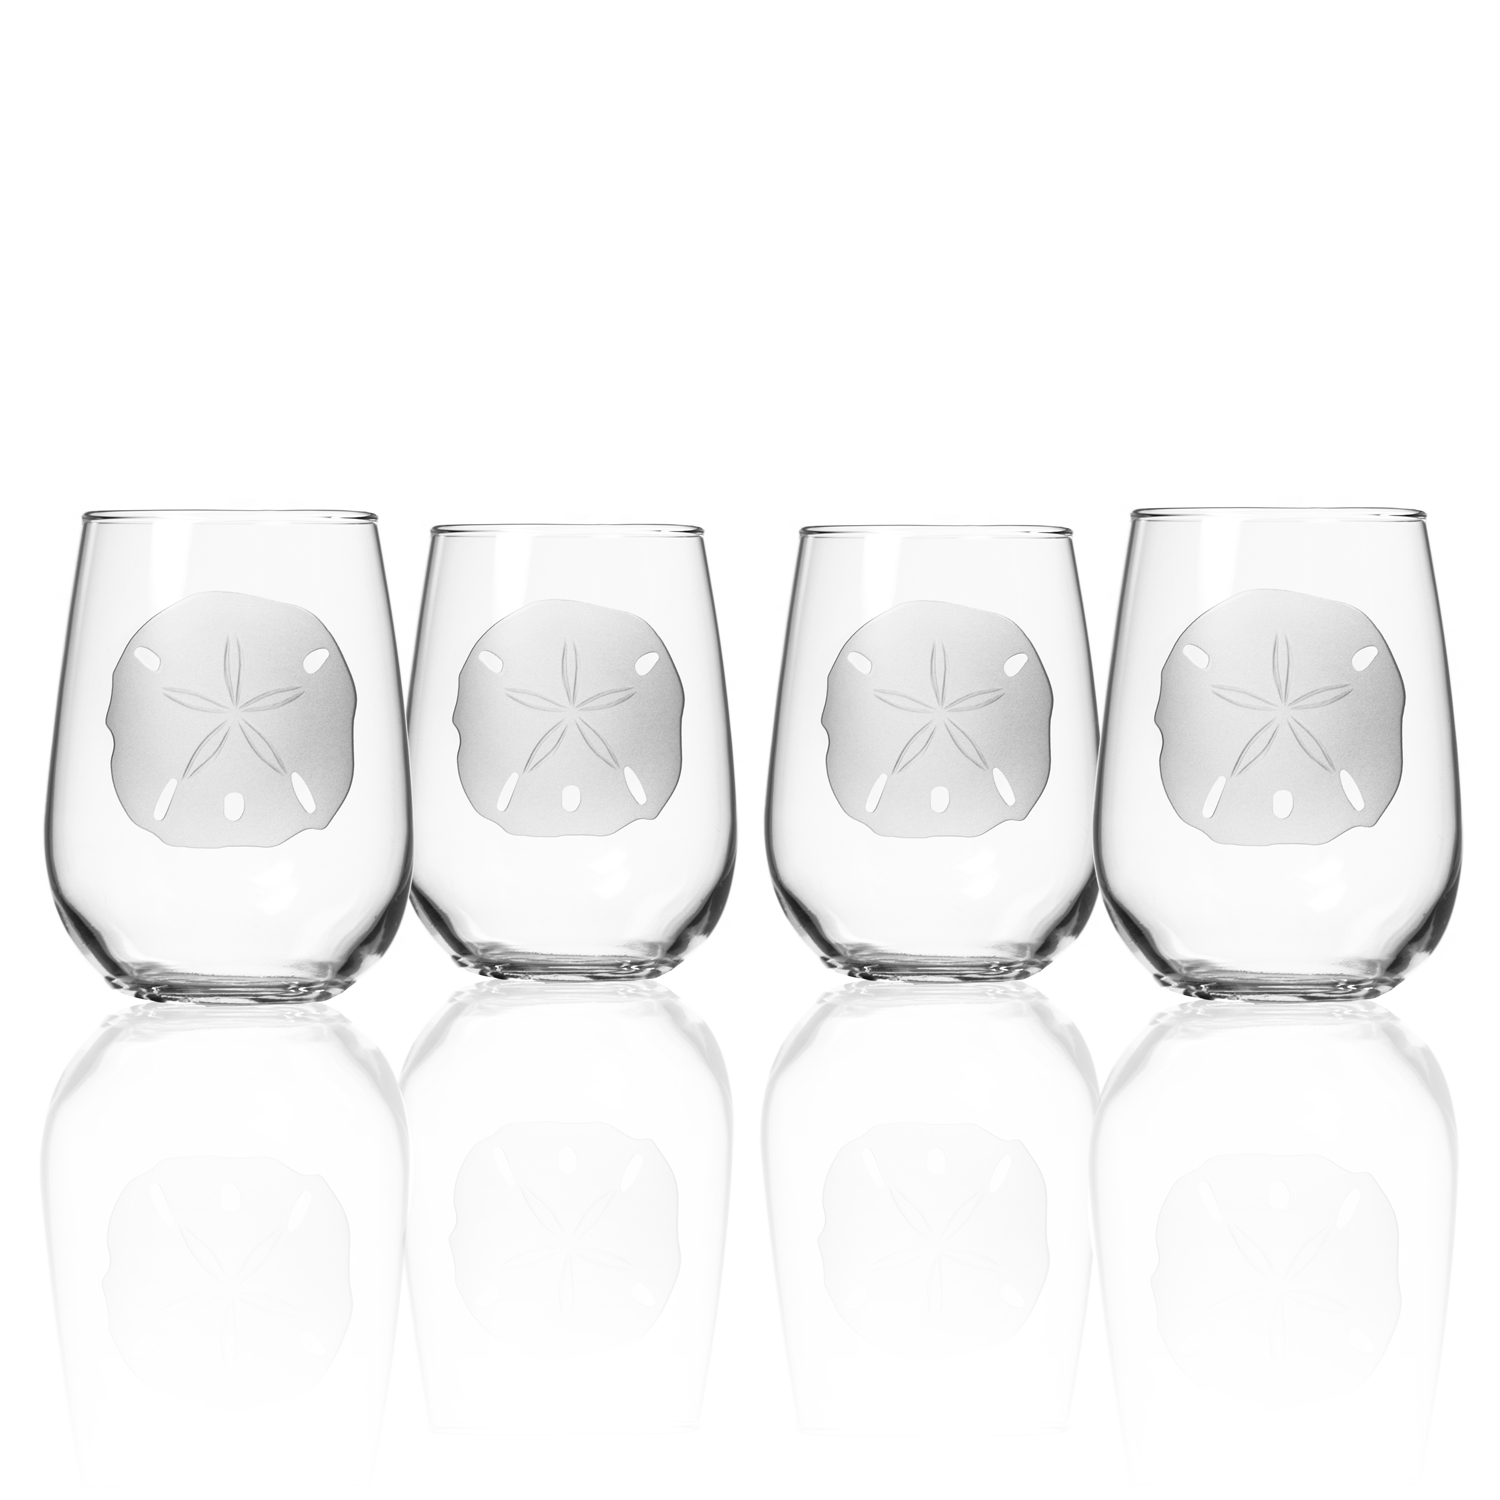 Perfect for beach living - Sand Dollar stemless tumblers